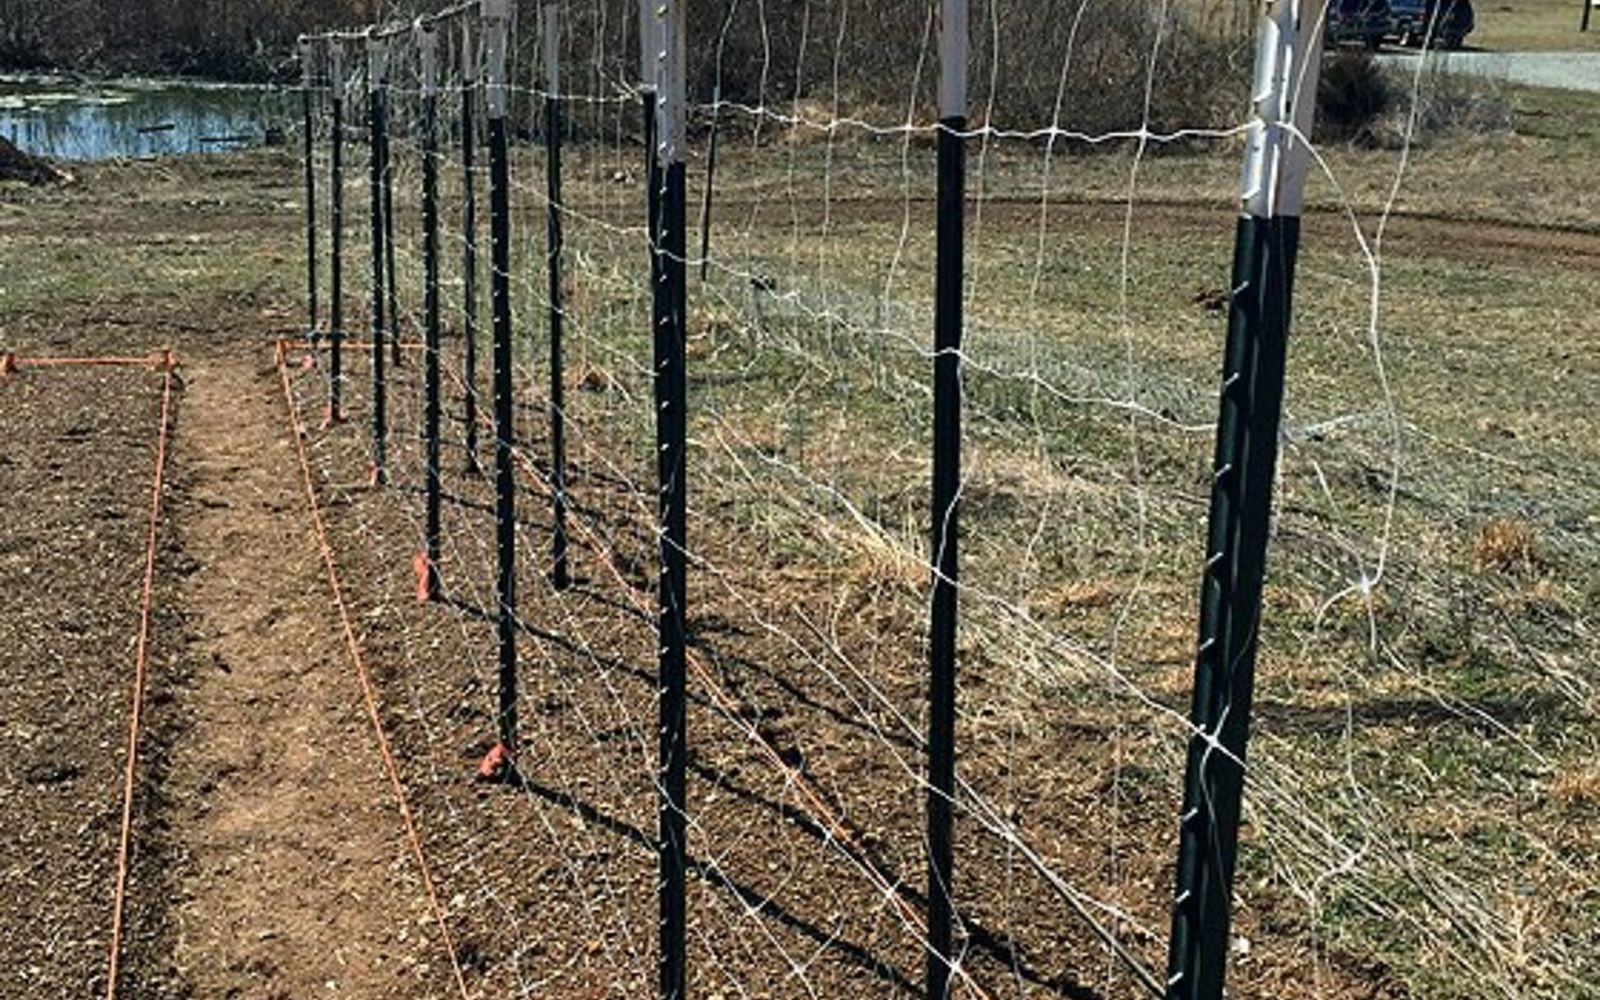 s 17 ways to build a gorgeous garden trellis this summer, gardening, Use PVC pipes and rebar for tomatoes